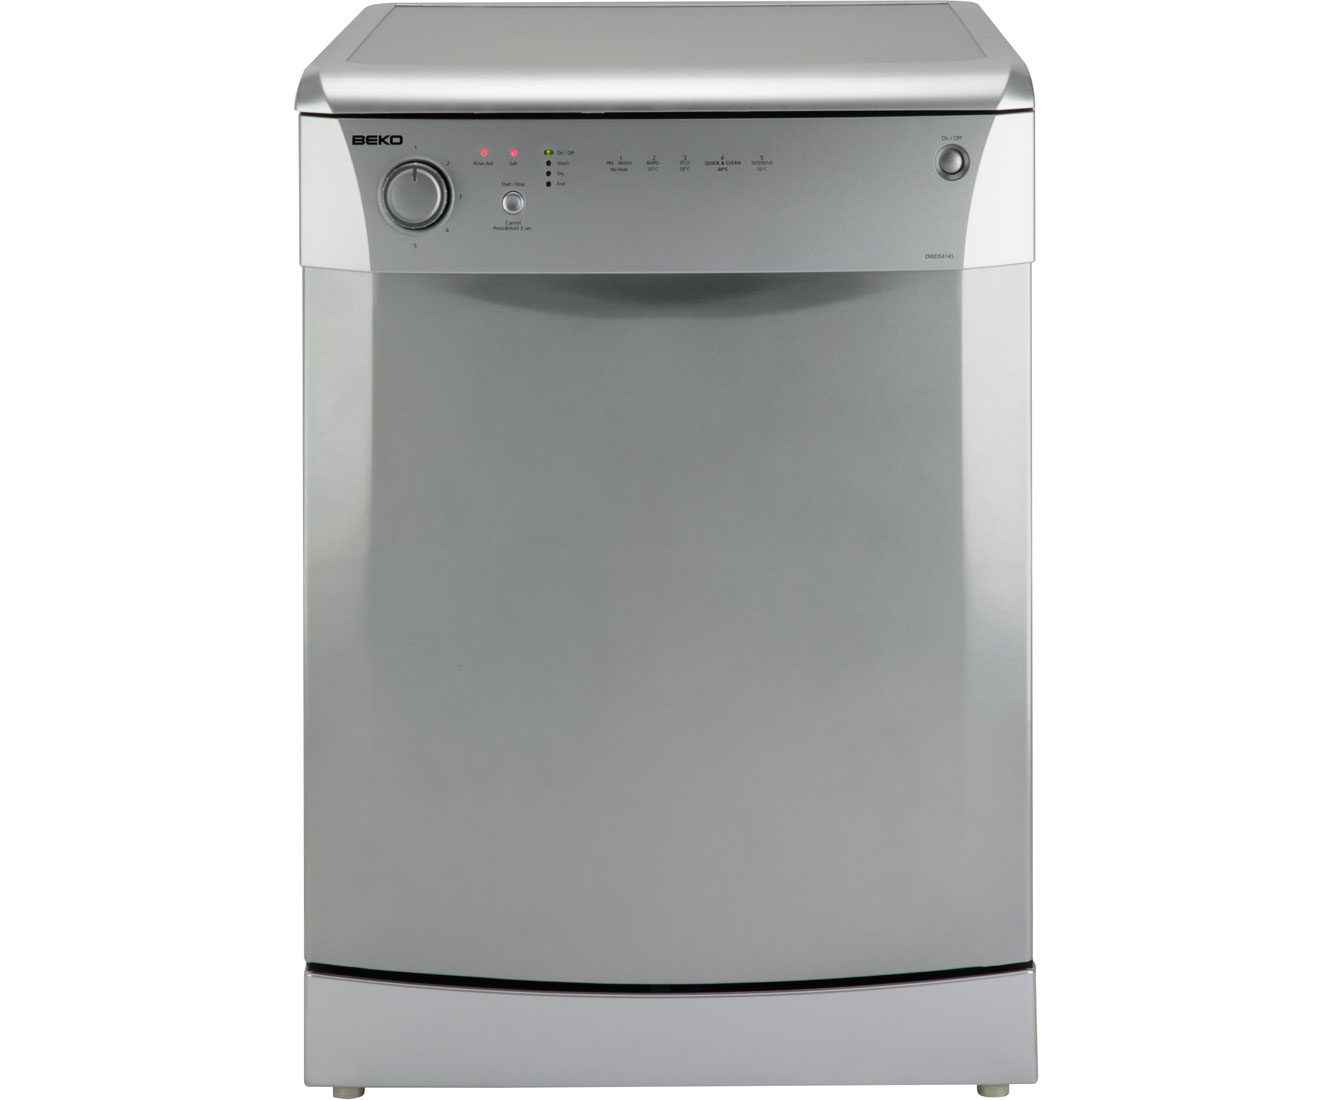 Silver beko dishwasher